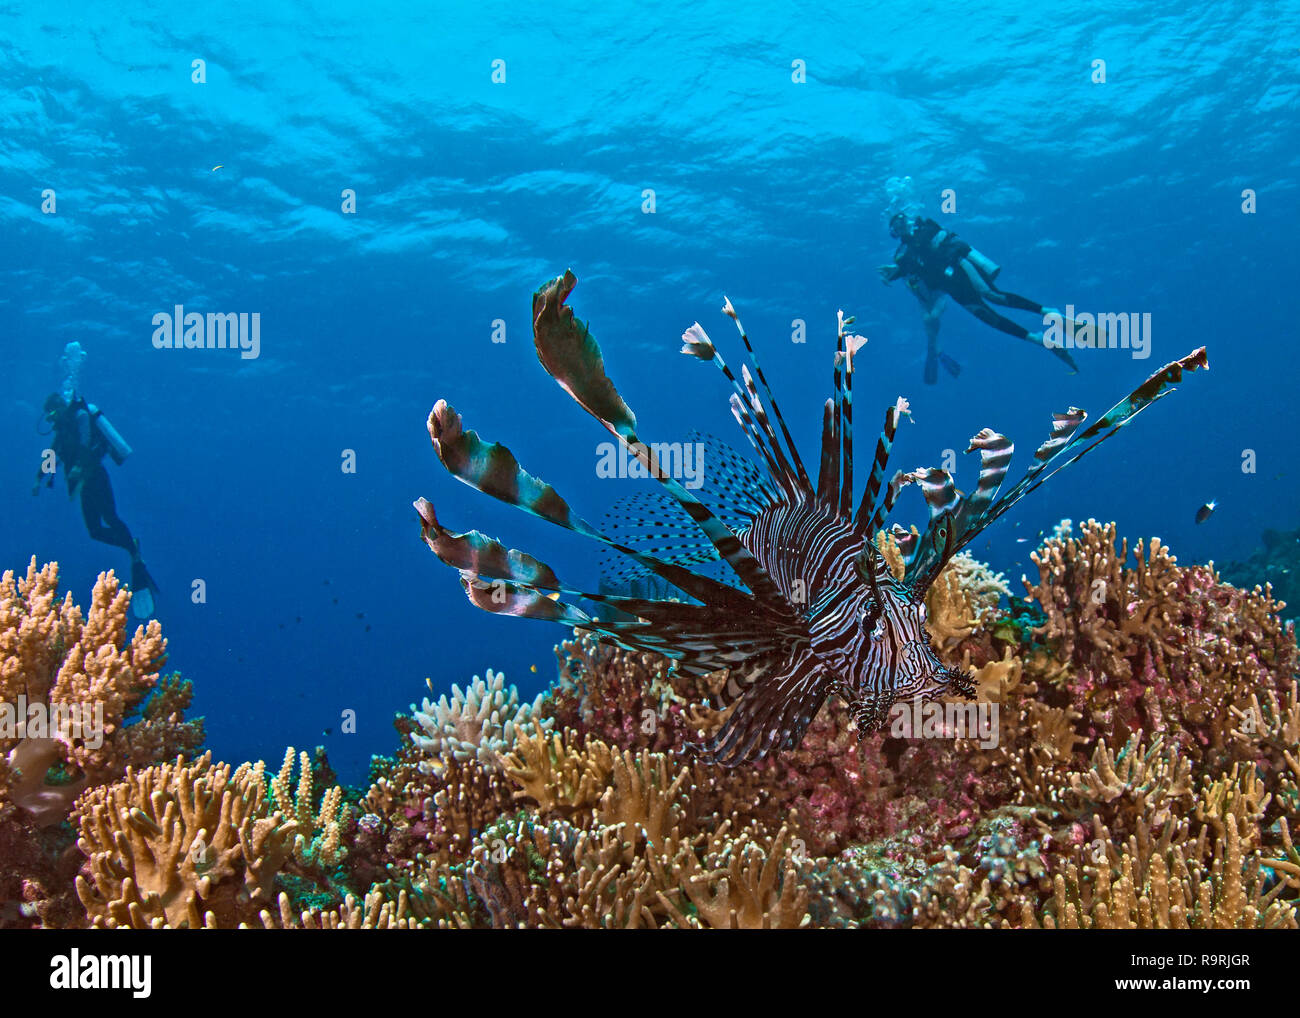 Close focus wide-angle image of lionfish on coral reef with scuba divers in blue water background. Spratly Islands, South China Sea. - Stock Image